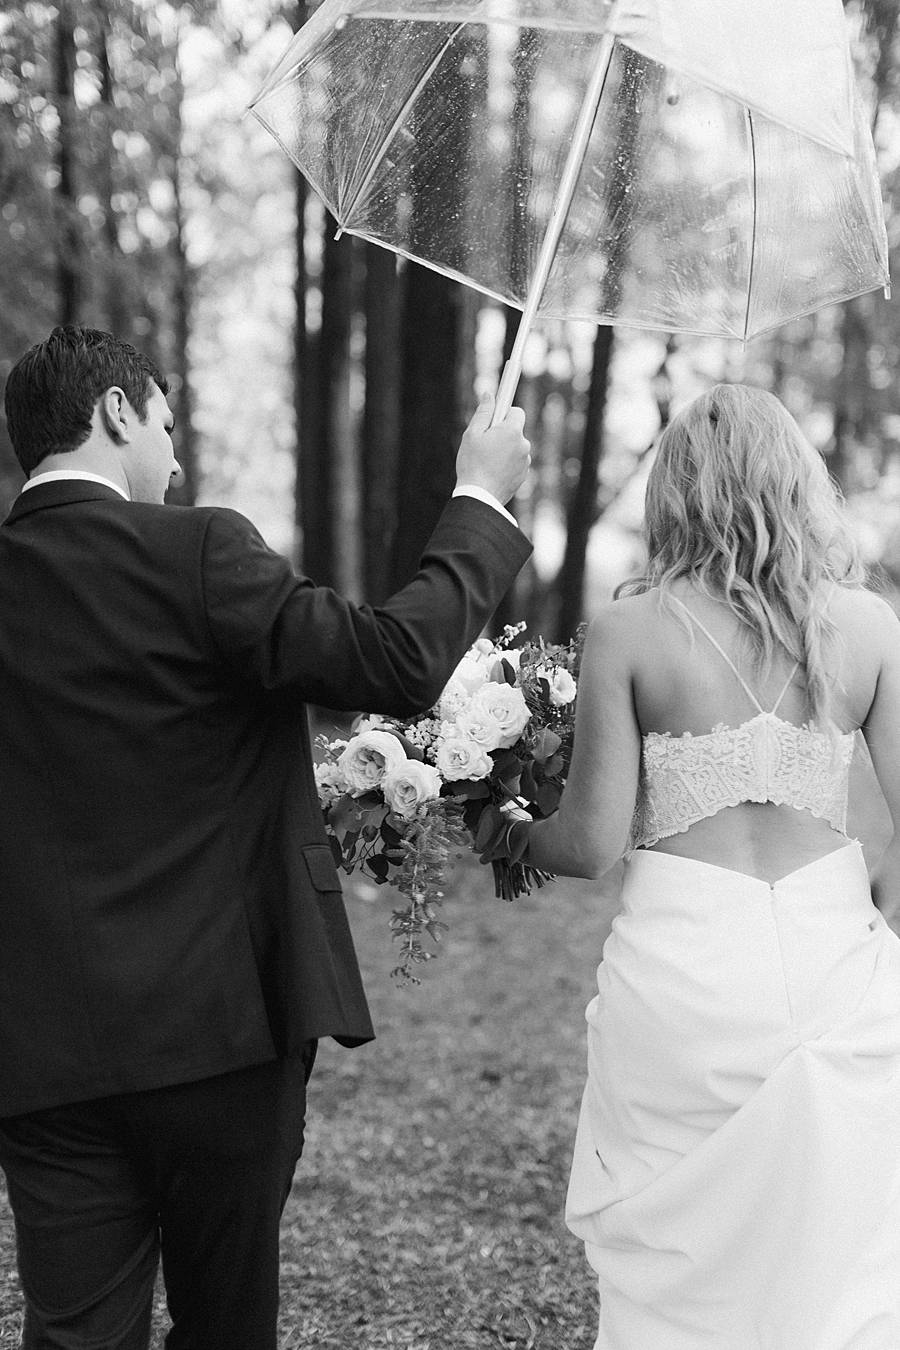 charleston runnymede april wedding 278_web